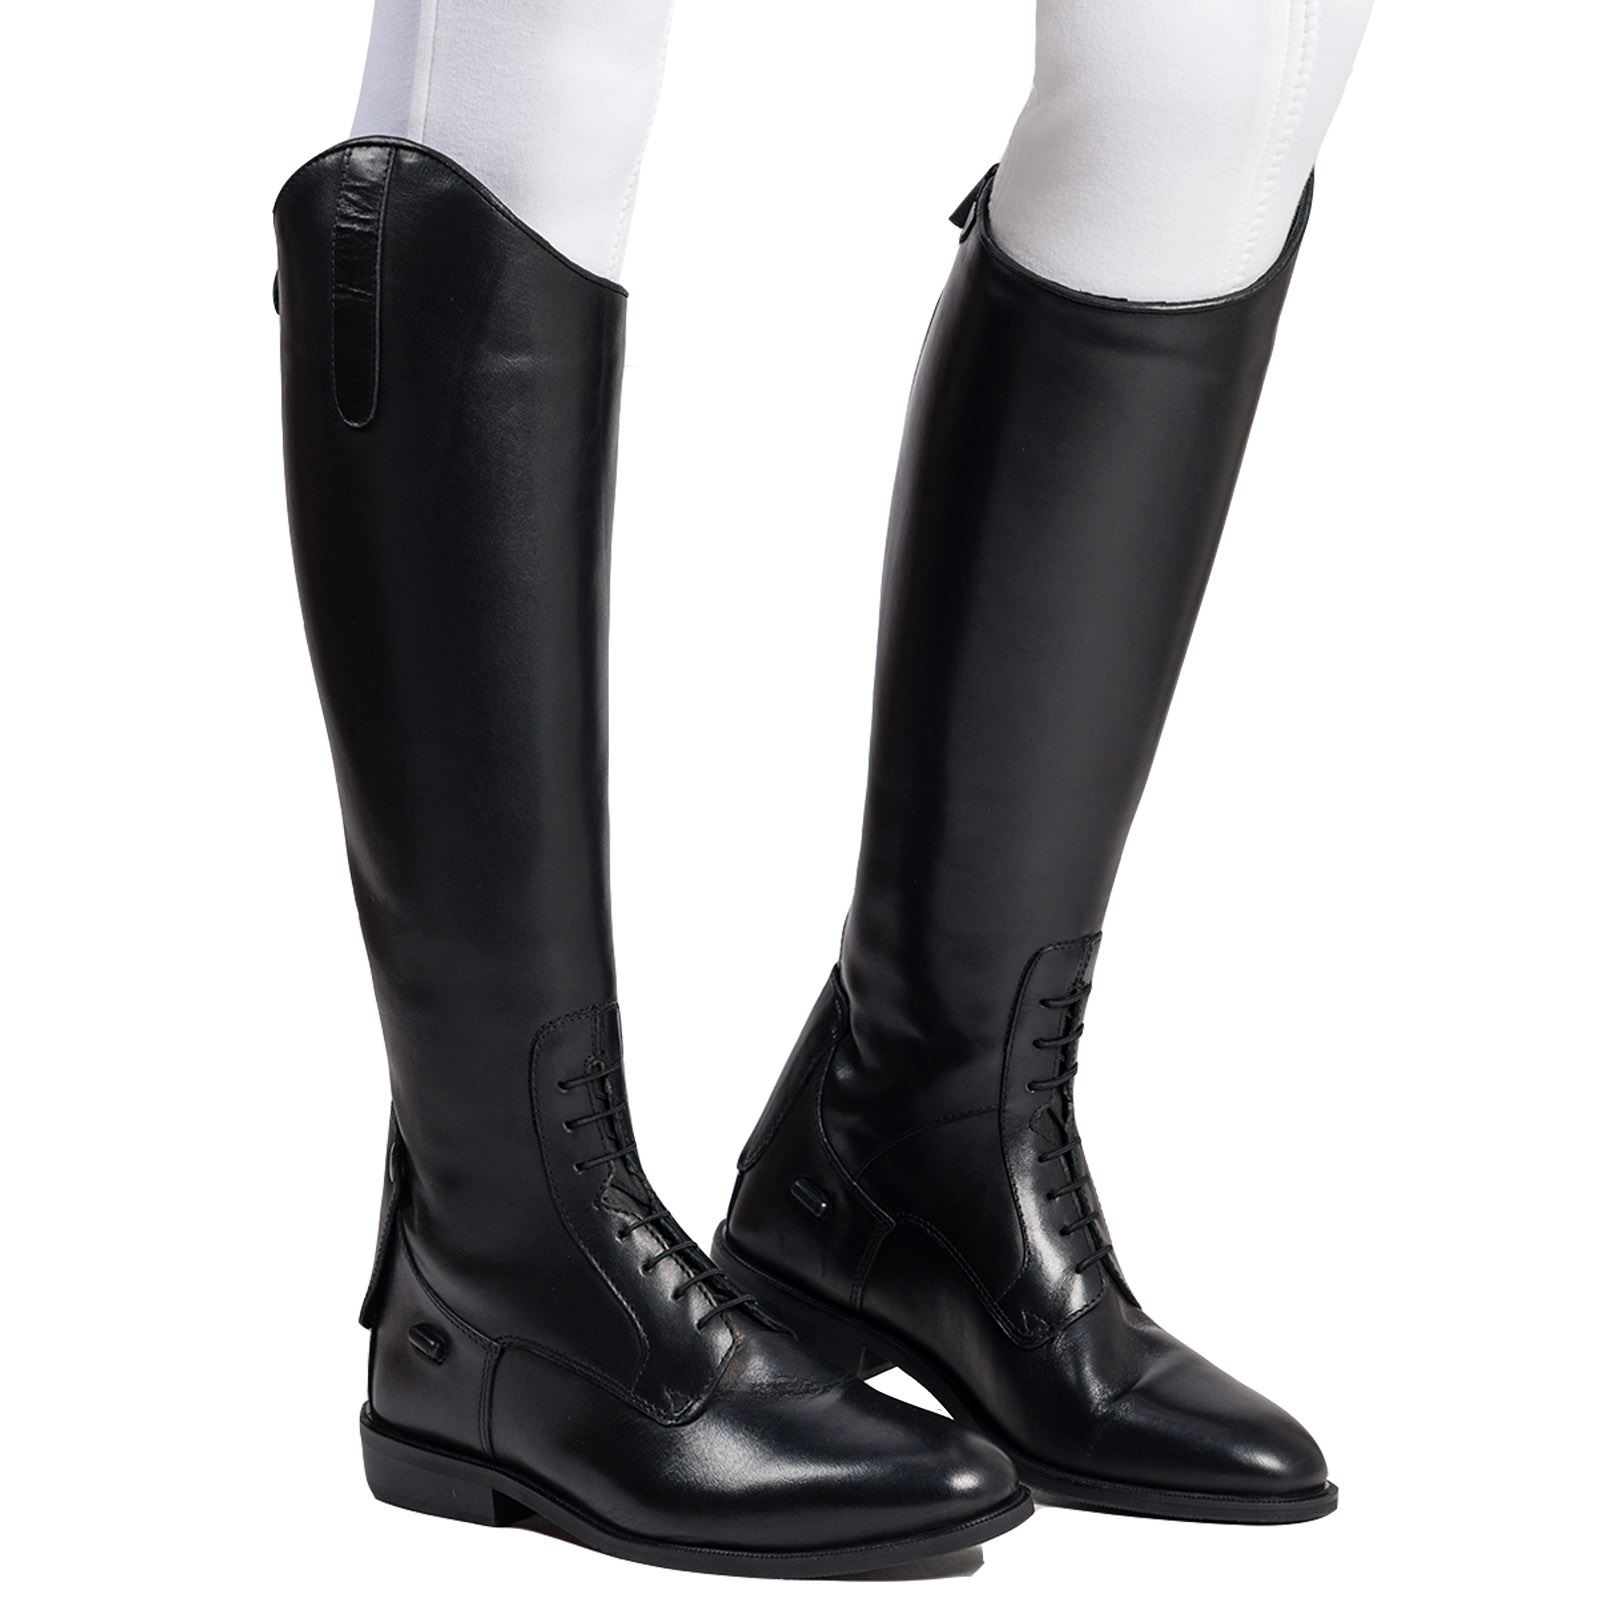 Wonderful Mountain Horse Victoria Womens Dressage Riding Boots Review